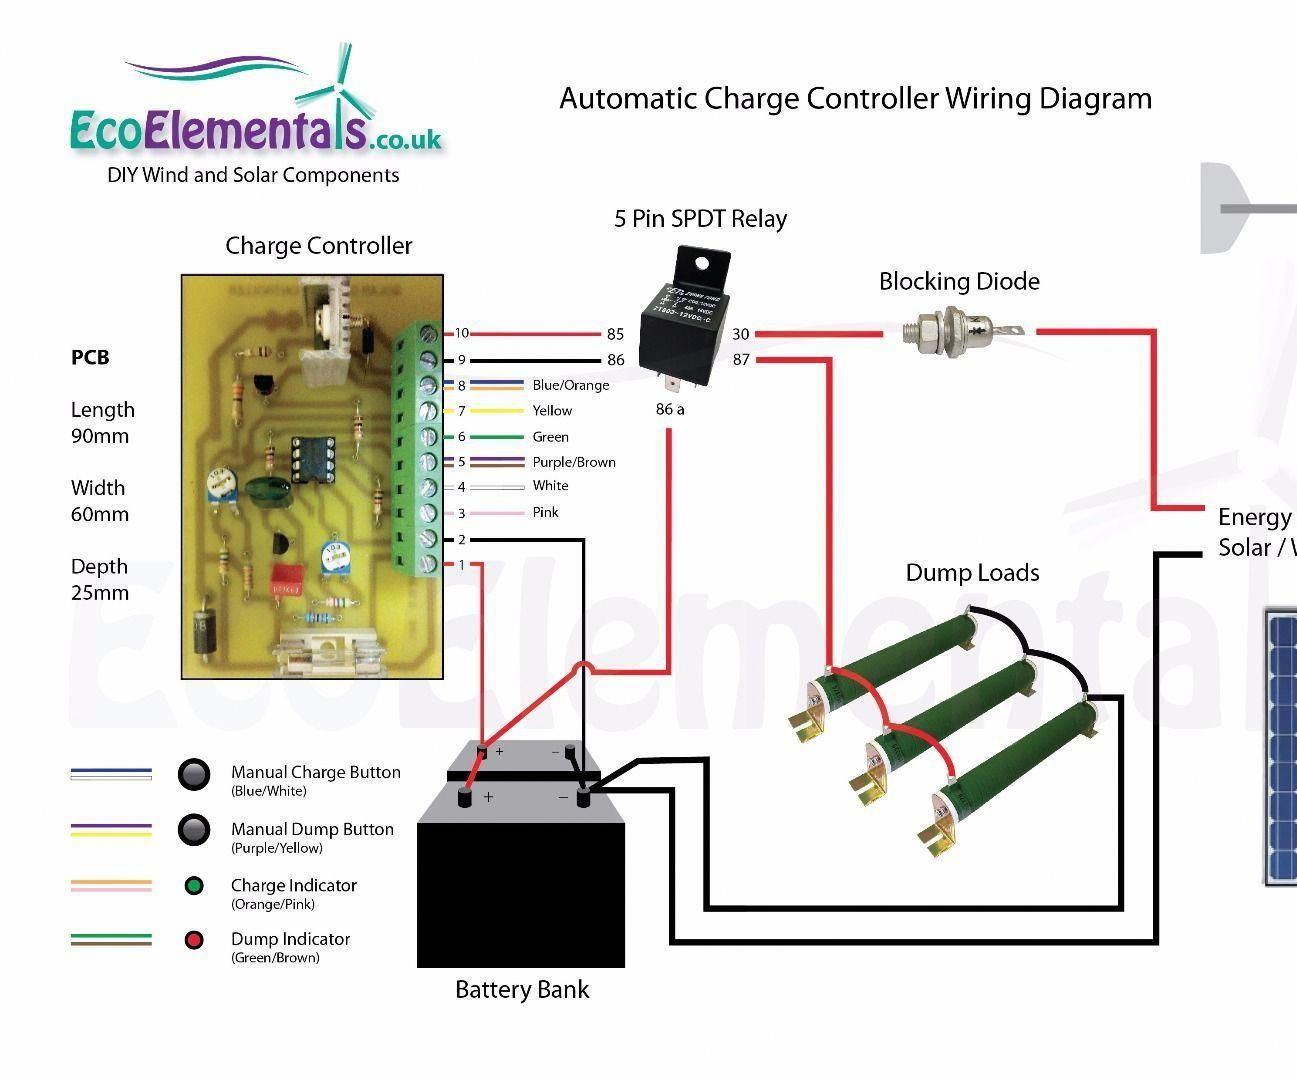 medium resolution of charge controller wiring diagram for diy wind turbine or solar panels solarpanels